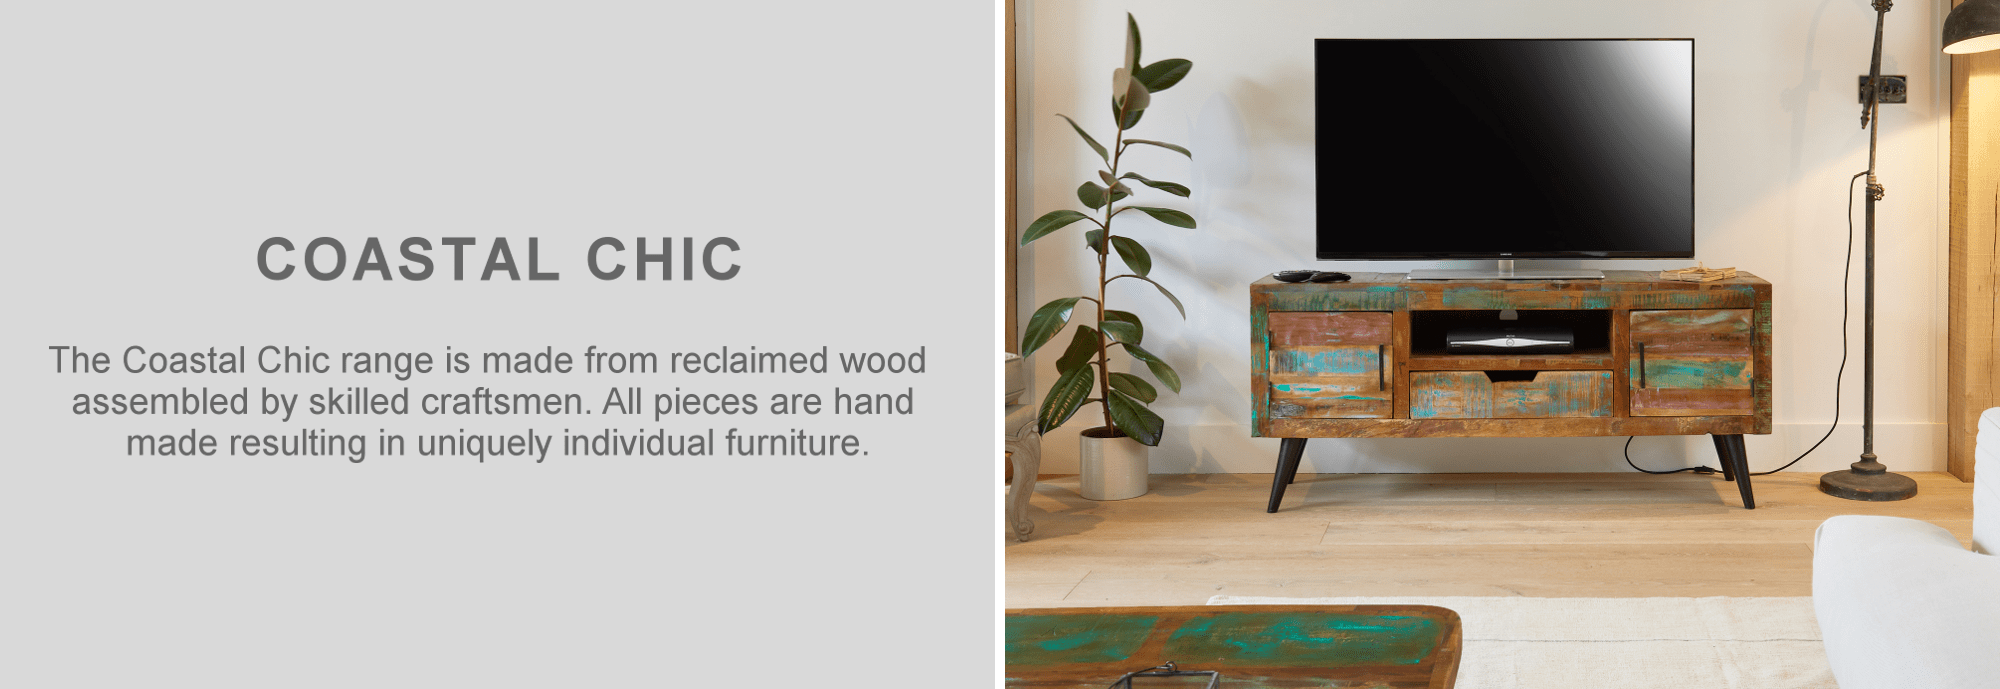 Coastal chic reclaimed wood television cabinet furniture in living room